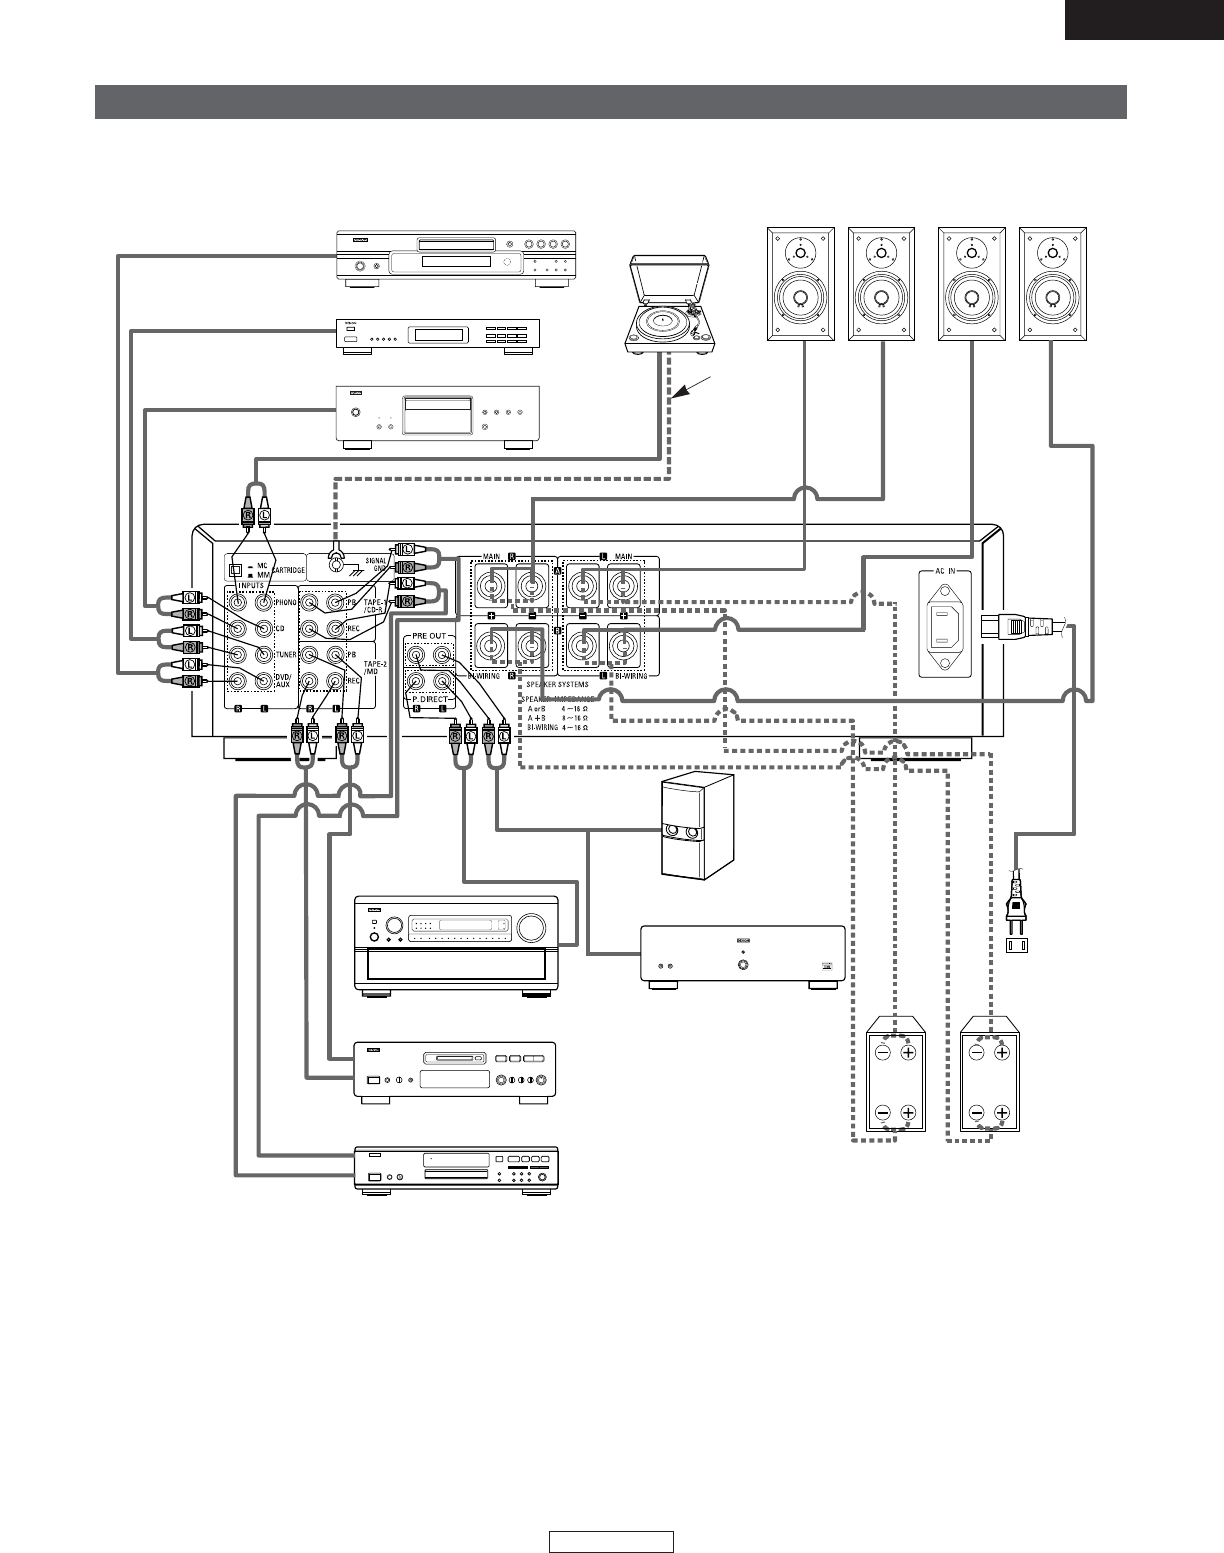 Bgd Coleman Furnace Wiring Diagram on trane split system